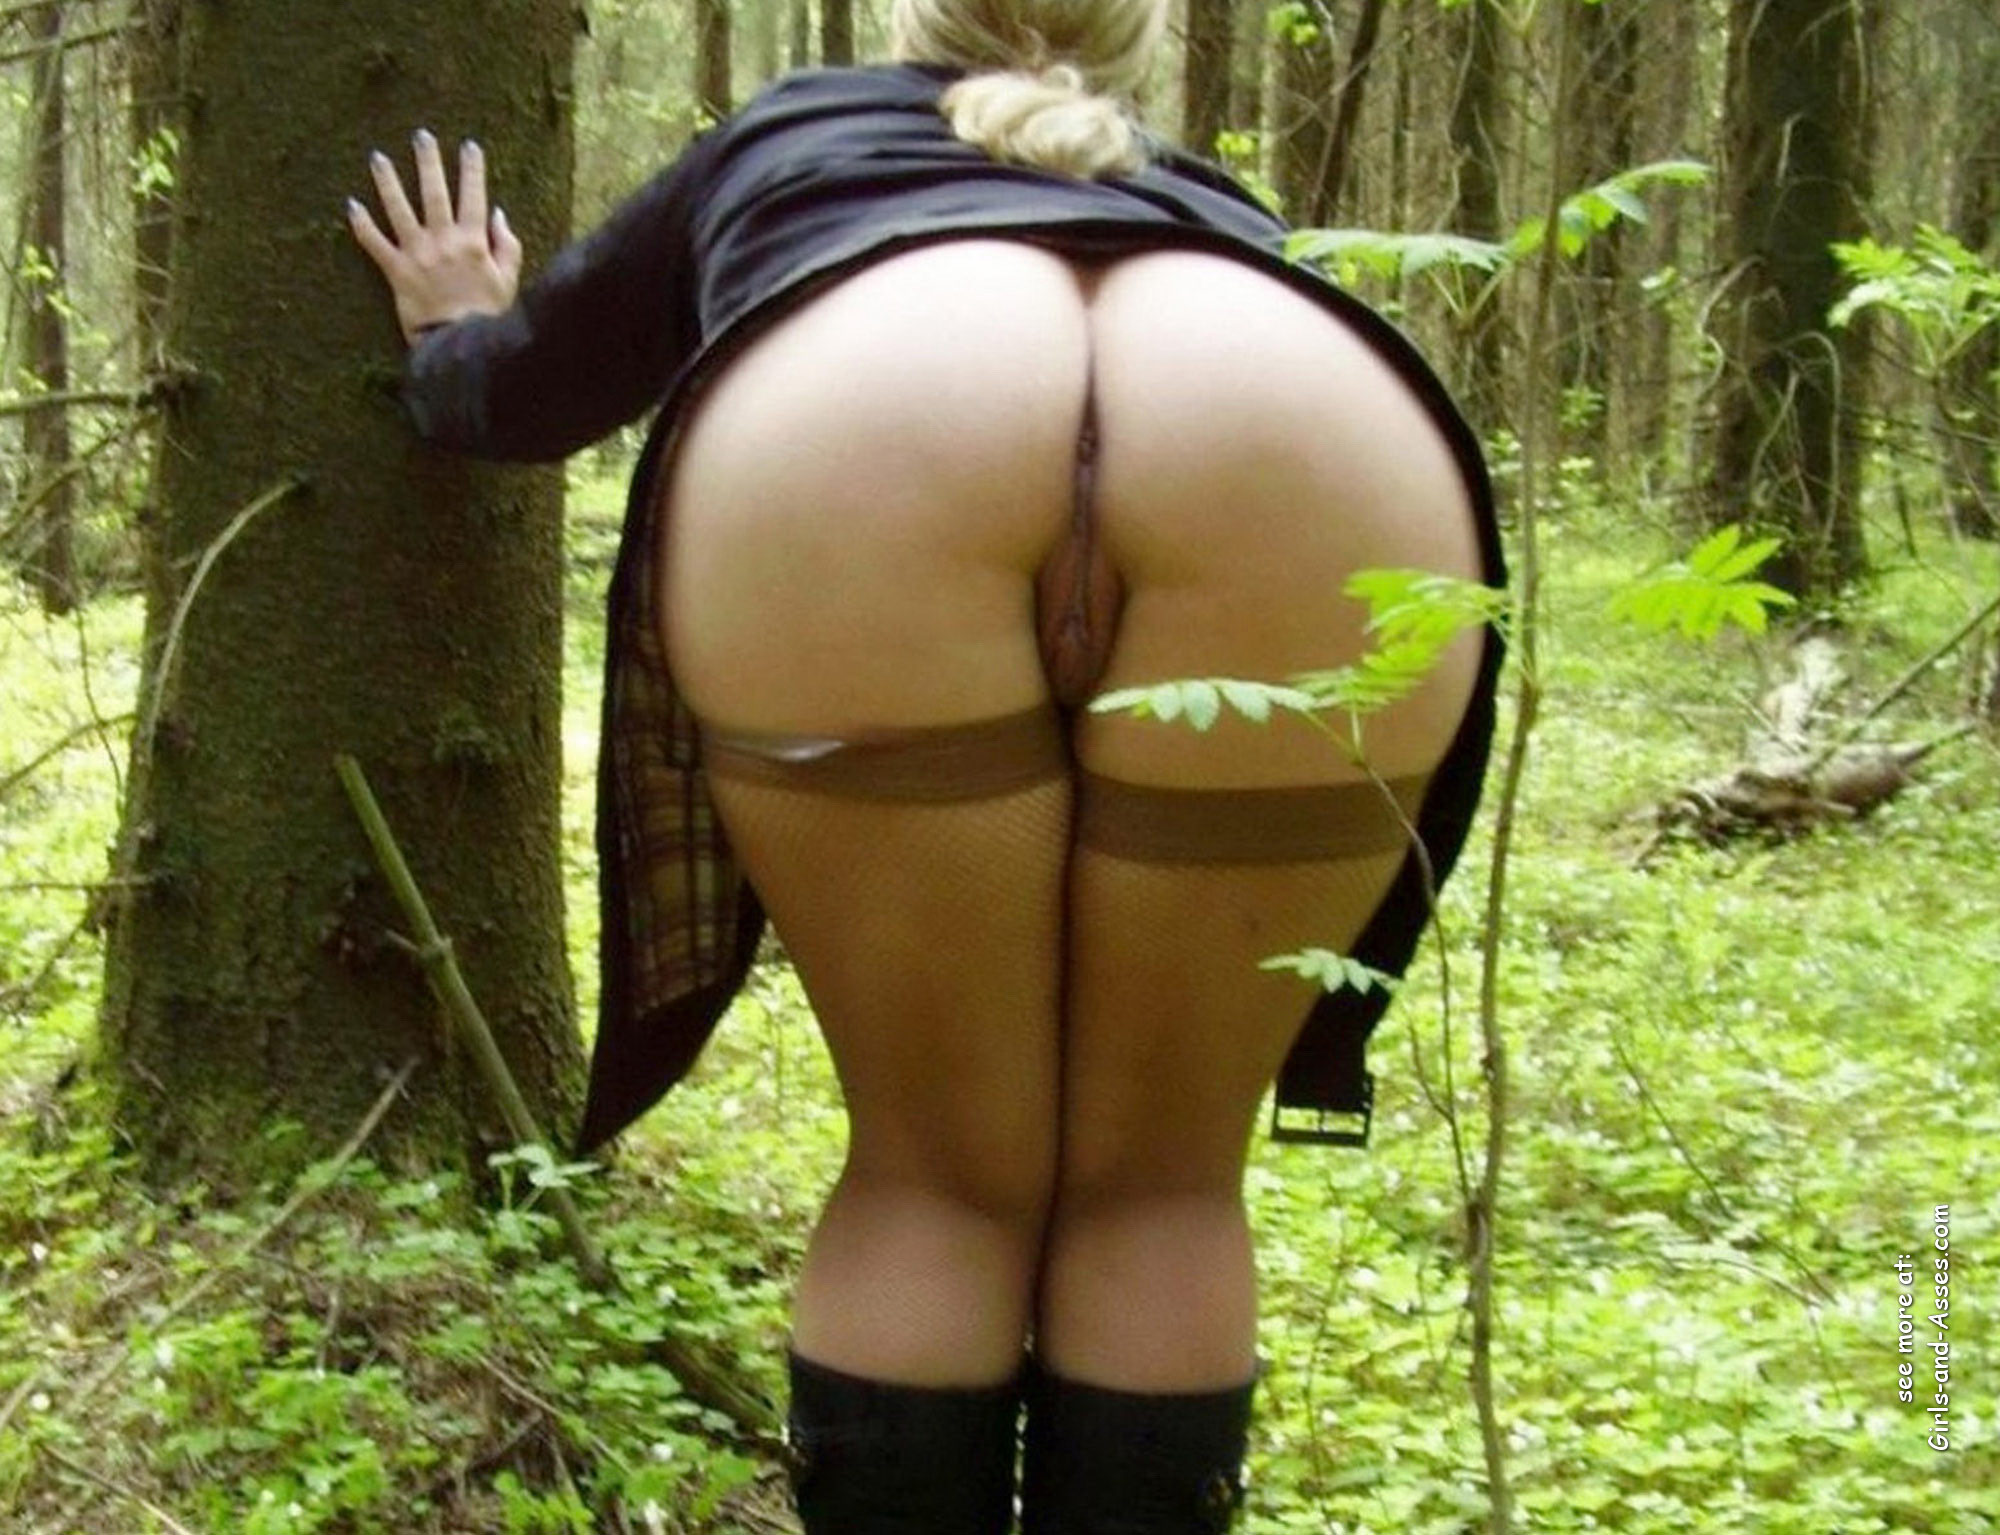 naked girl in doggystyle position in the forest photo 04427